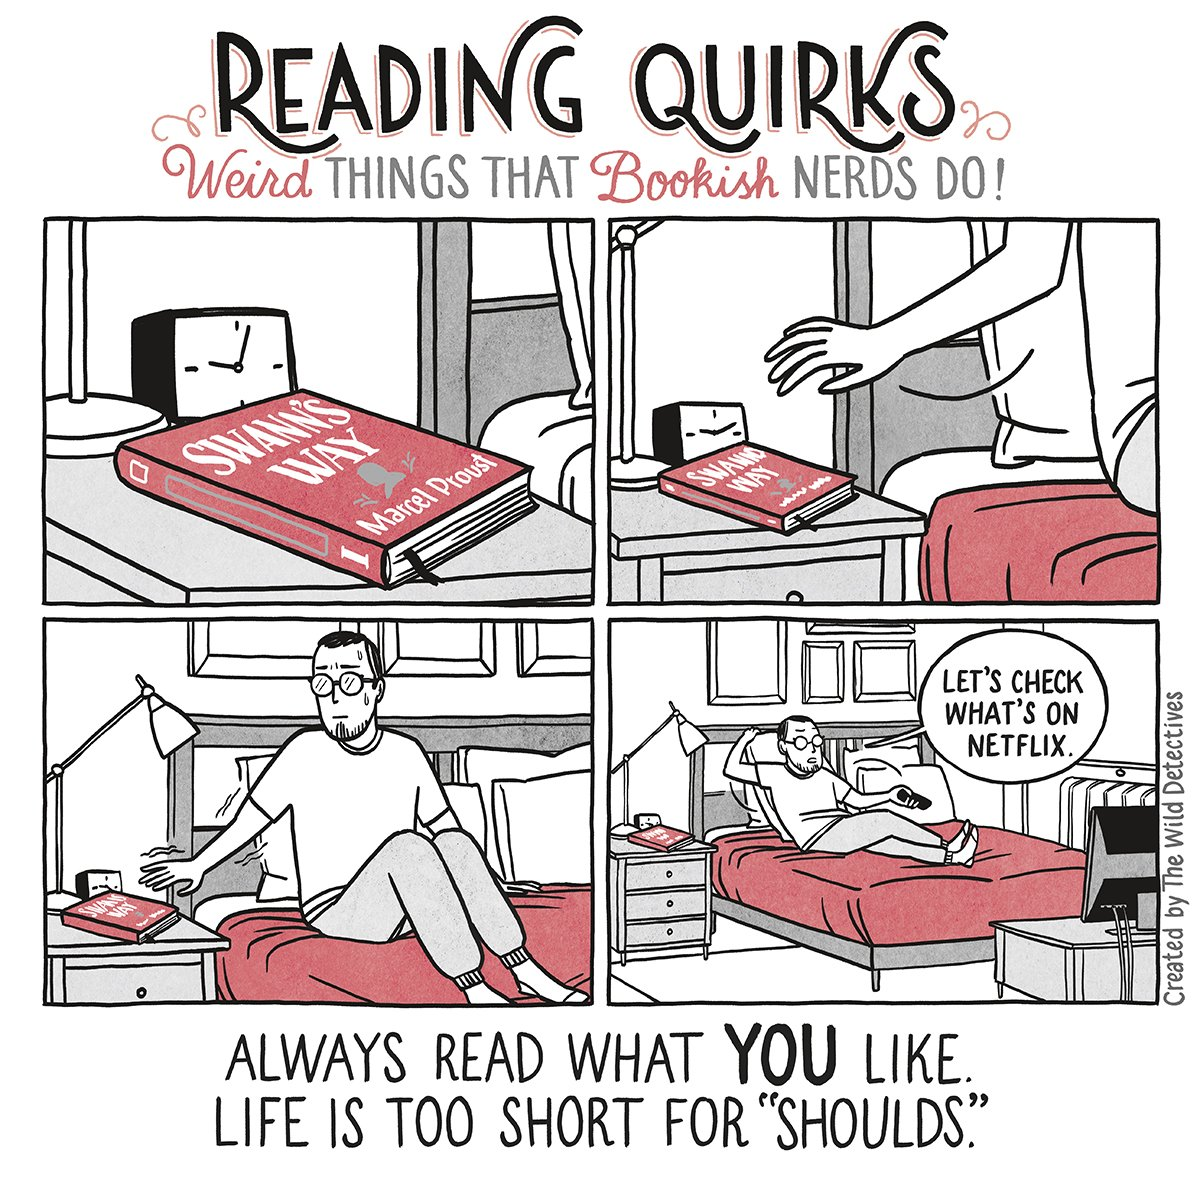 Reading Quirks Comic - Weird things that bookish nerds do.  Always read what you like, life is too short for 'shoulds'.